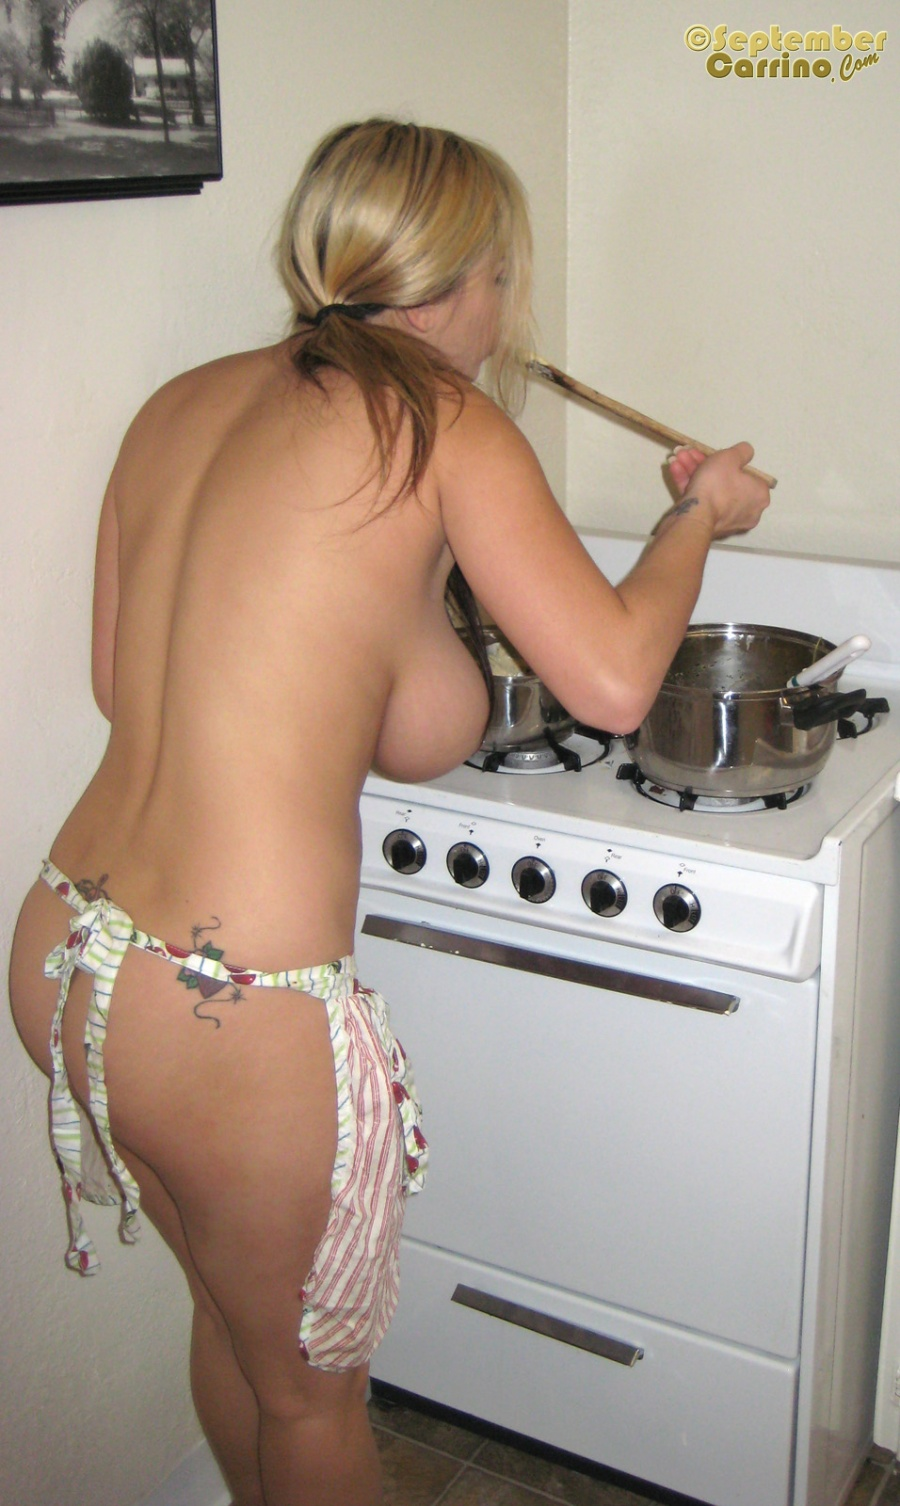 Guy Cooking Naked For Girl